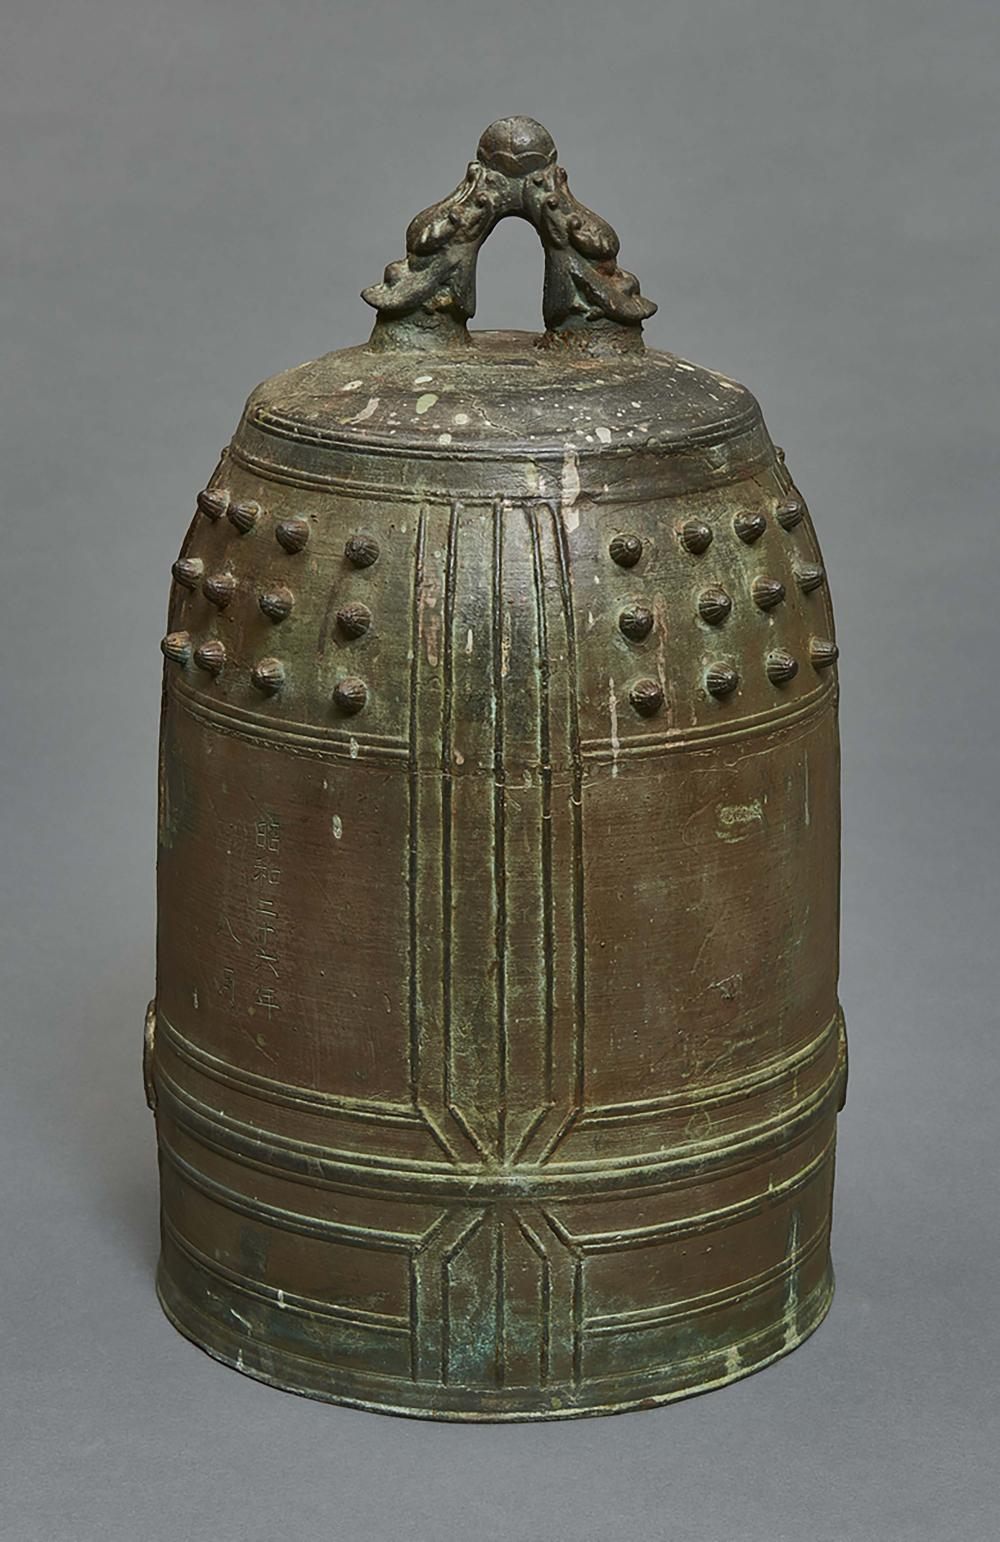 Large and heavy bronze temple bell (bonchō) with an inscription with the na